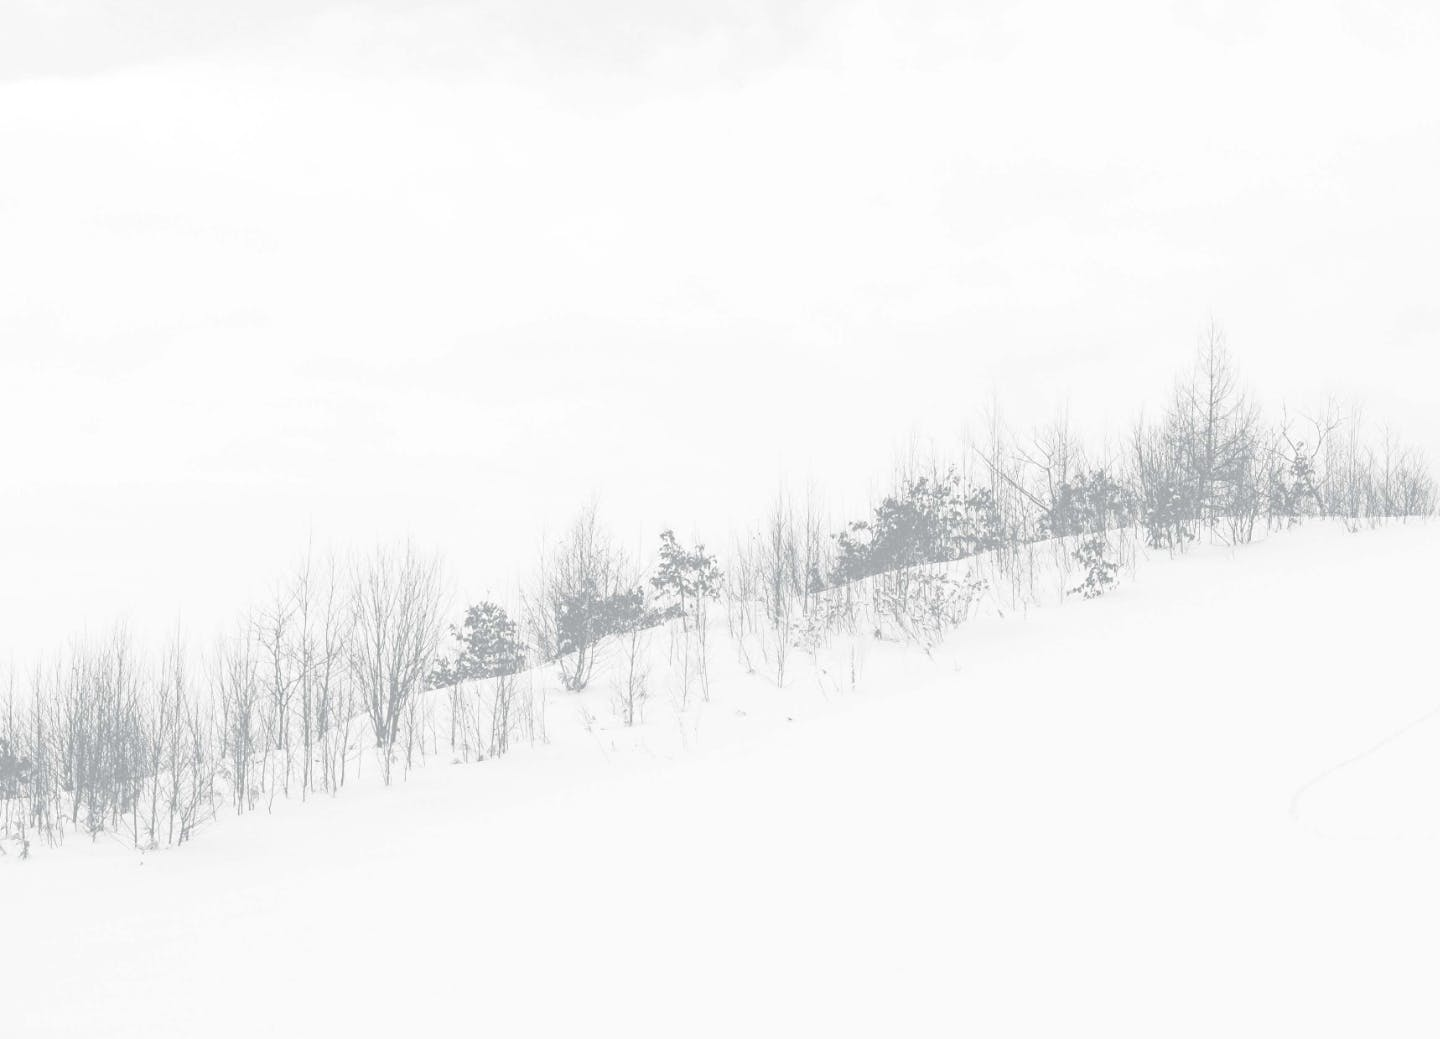 snowy wooded landscape